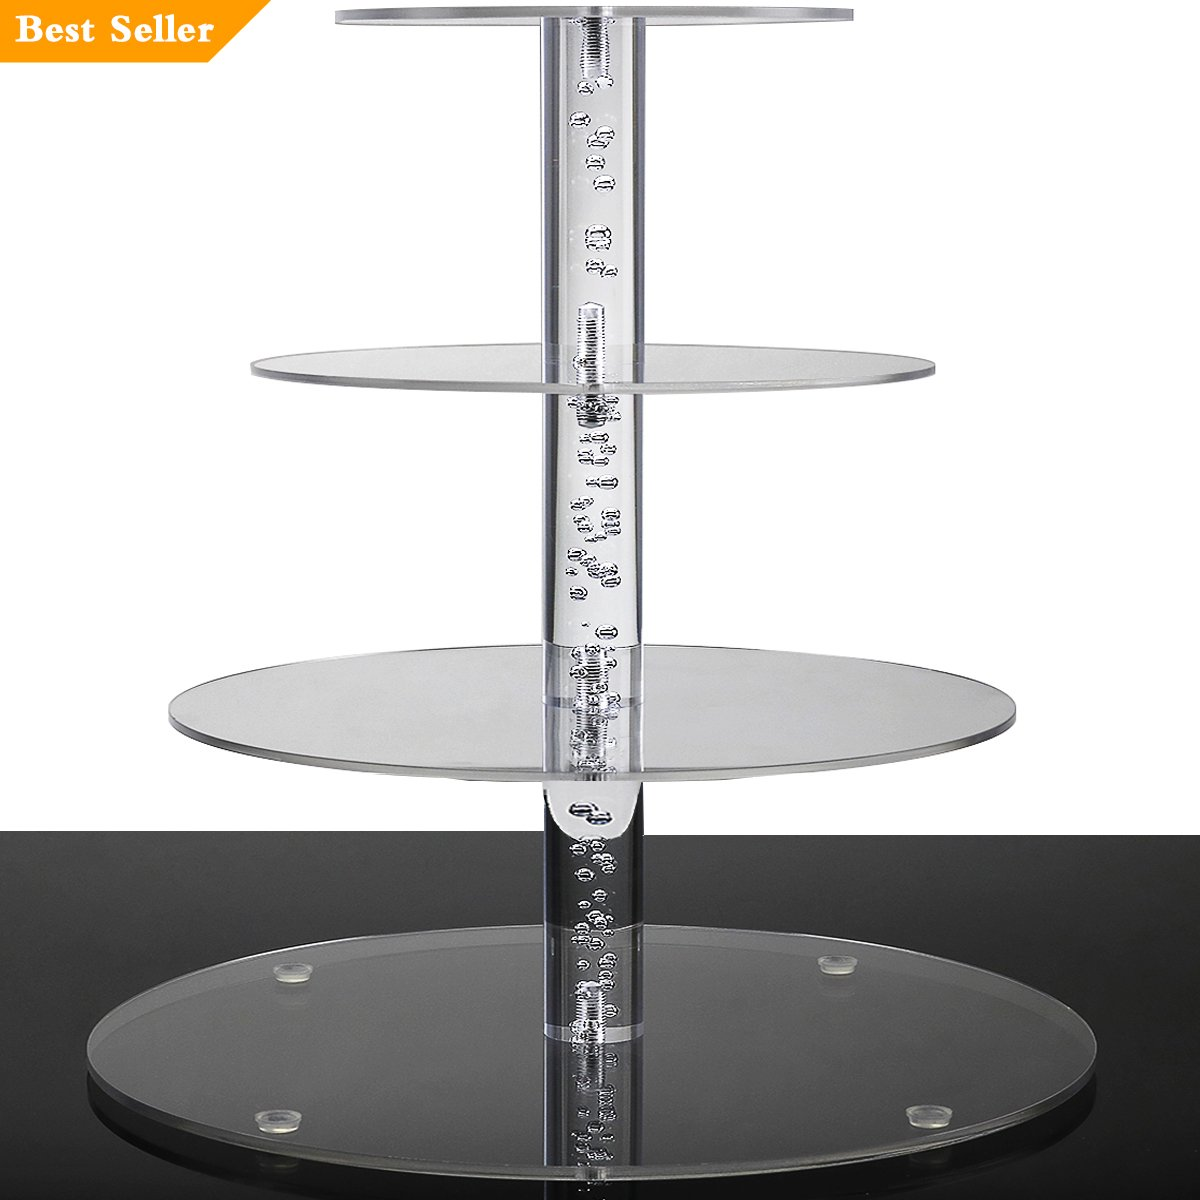 2018 New Style 4 Tiers Cupcake Stands Tower - Clear Acrylic Display Holder Tree - Tiered Cupcake Display- Tiered Round Pastry Stand Dessert Stands Wedding Cake Stands For Parties Birthday - DYCacrlic by DYCacrlic (Image #1)